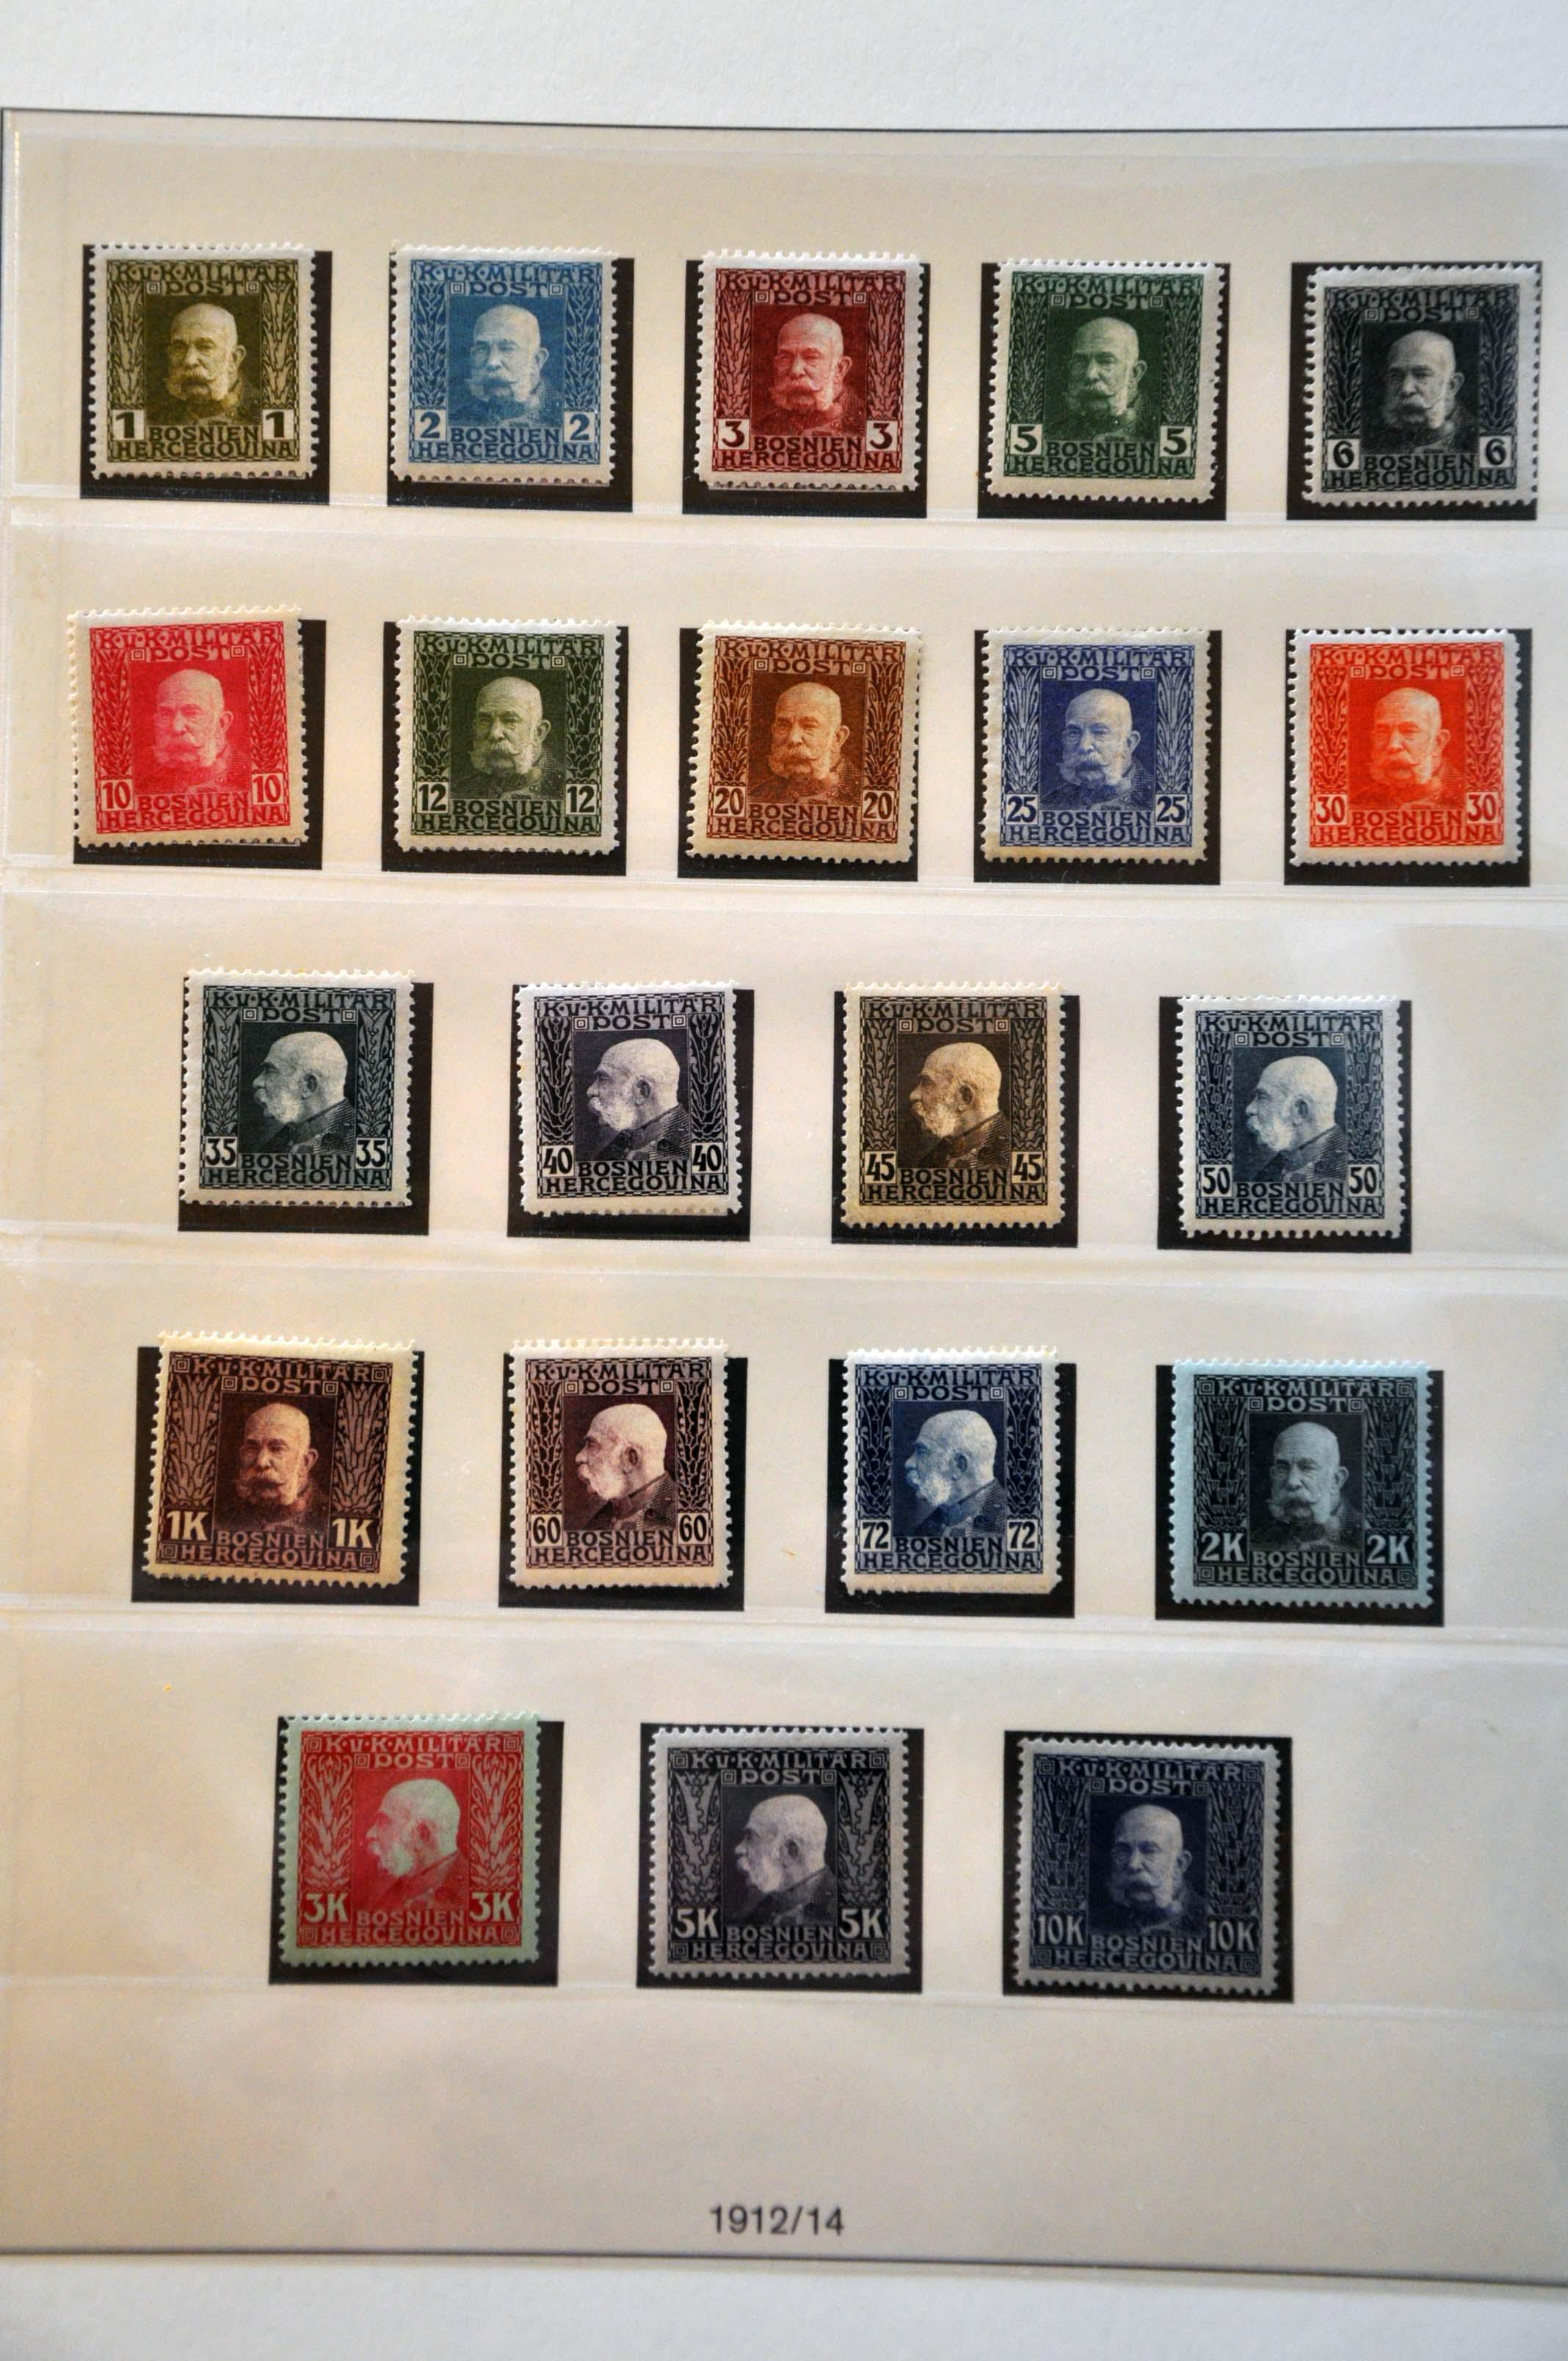 Lot 583 - Austria and former territories Bosnia and Herzegovina (Austrian) -  Corinphila Veilingen Auction 245-246 Day 2 - Foreign countries - Collections and lots, Foreign countries - Boxes and literature